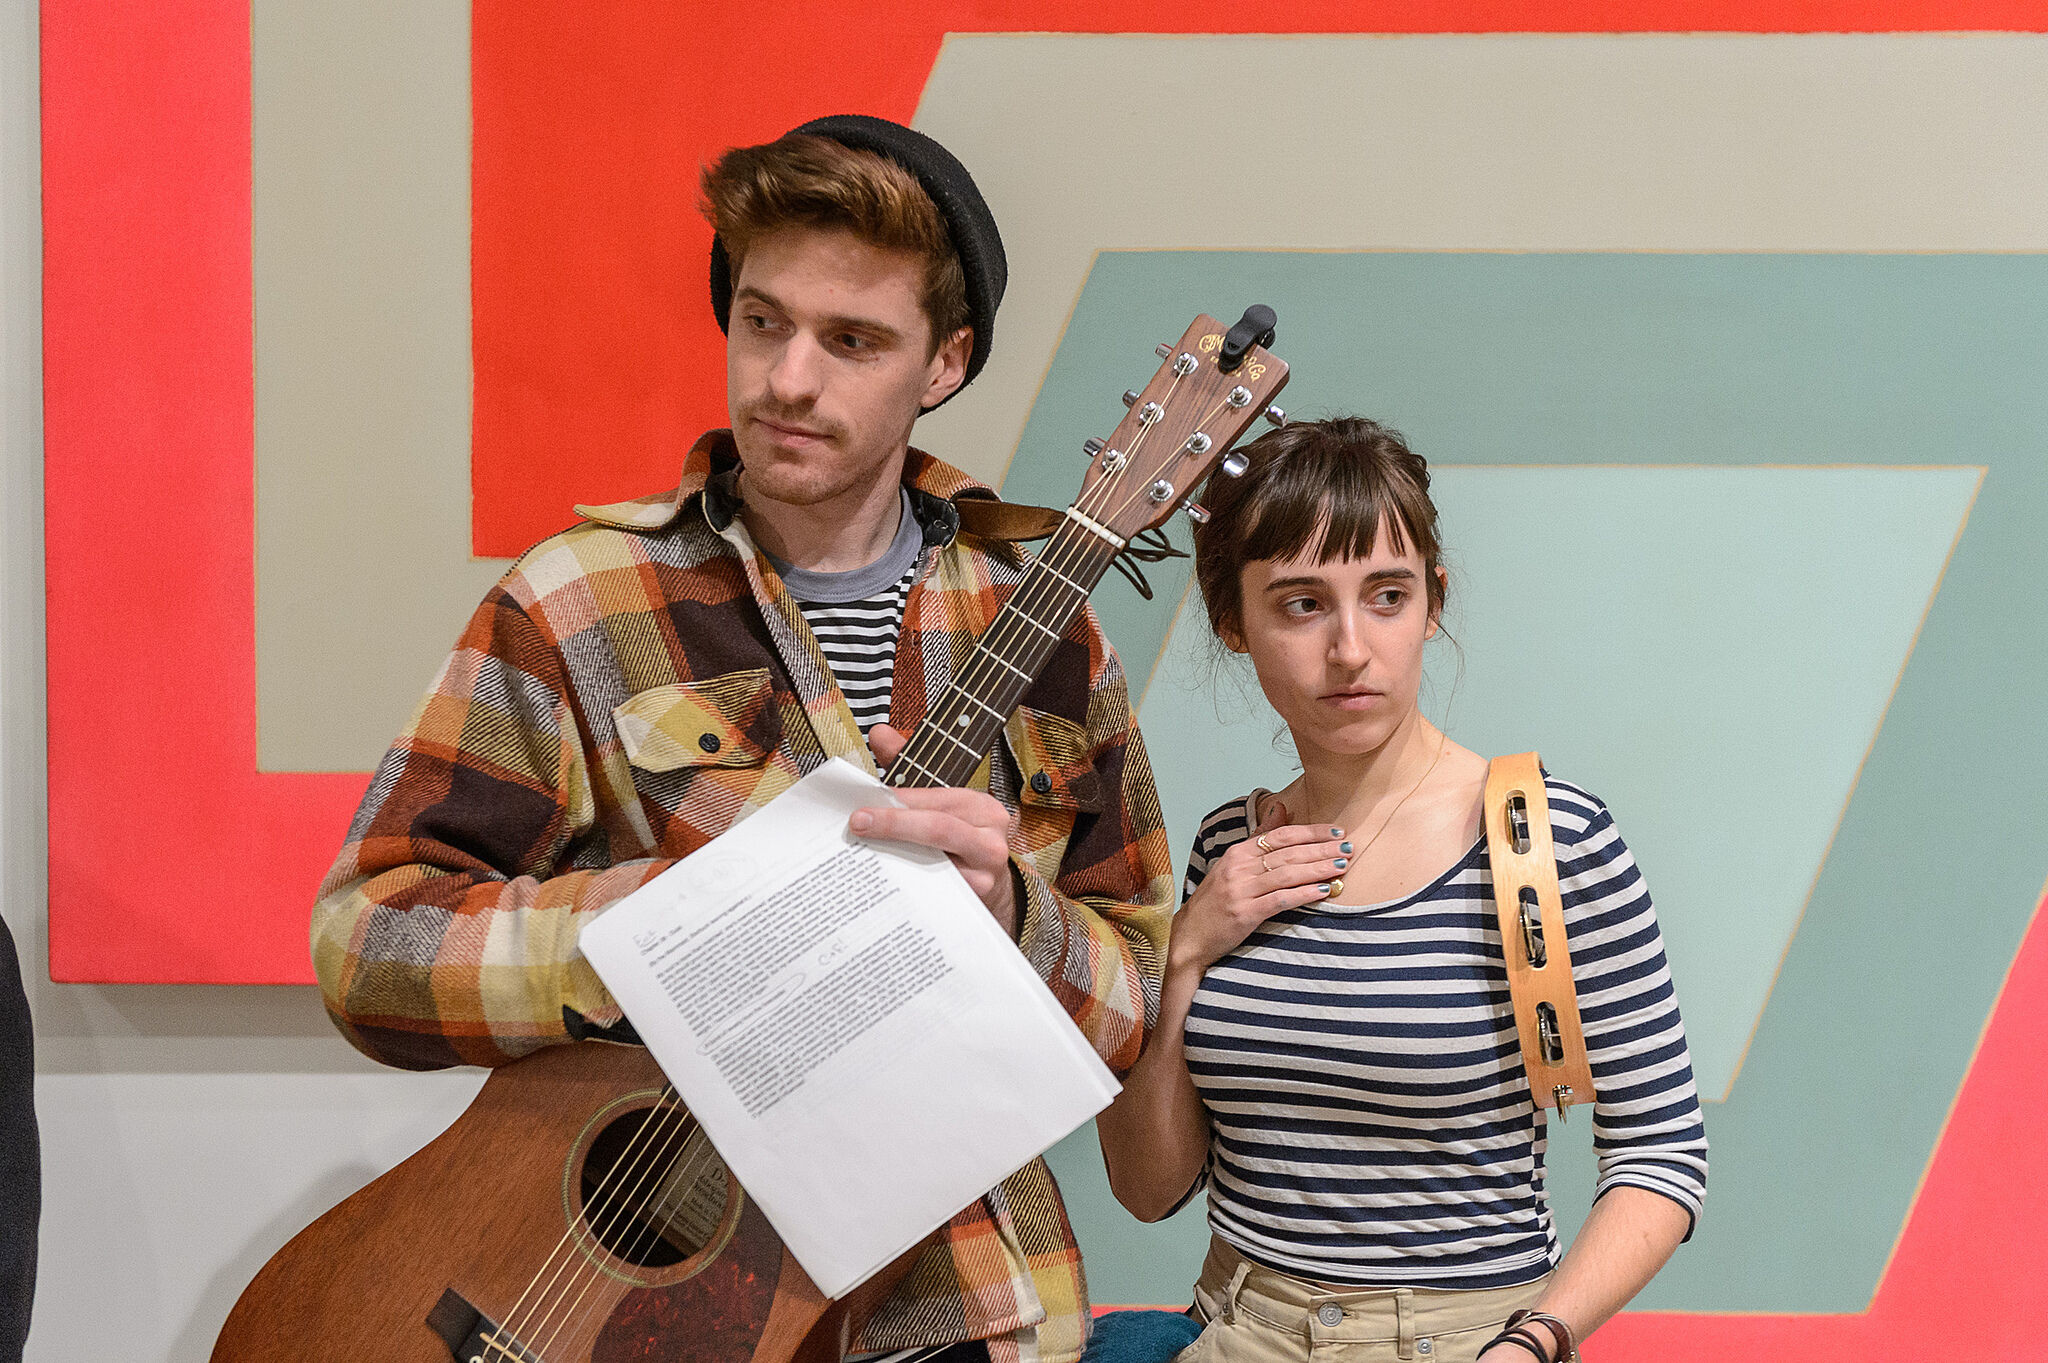 Girl and guy with instruments.